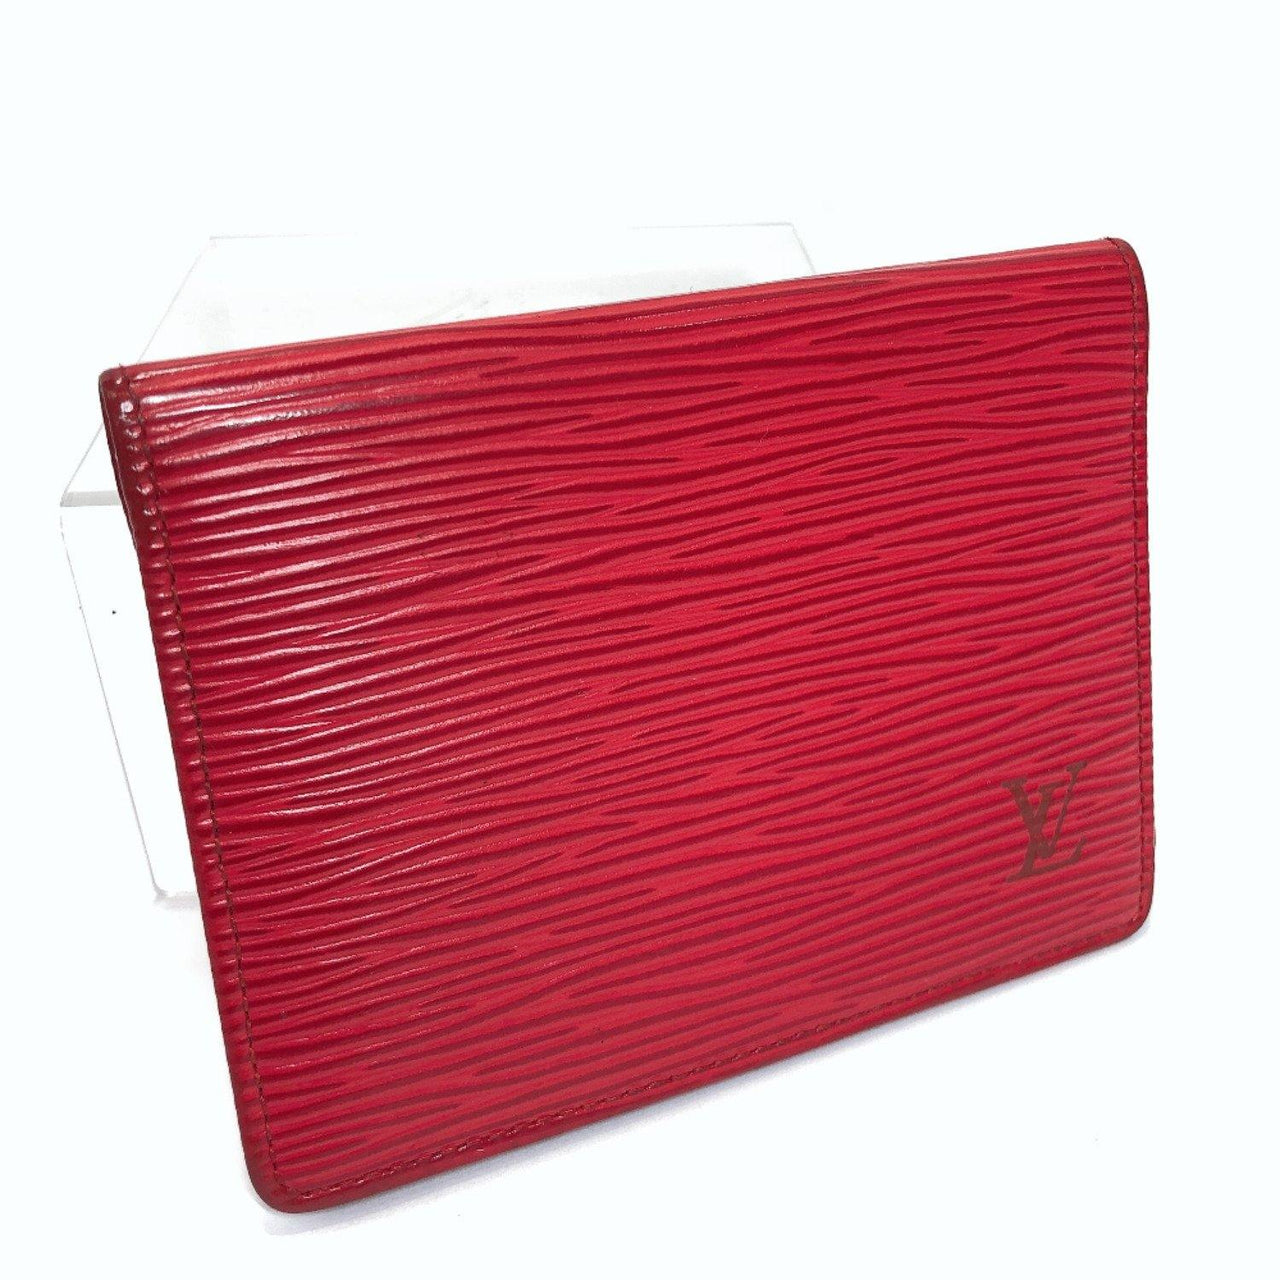 LOUIS VUITTON Pass case  M63207 Porto 2 cult Vertical Epi Leather Red unisex Used - JP-BRANDS.com